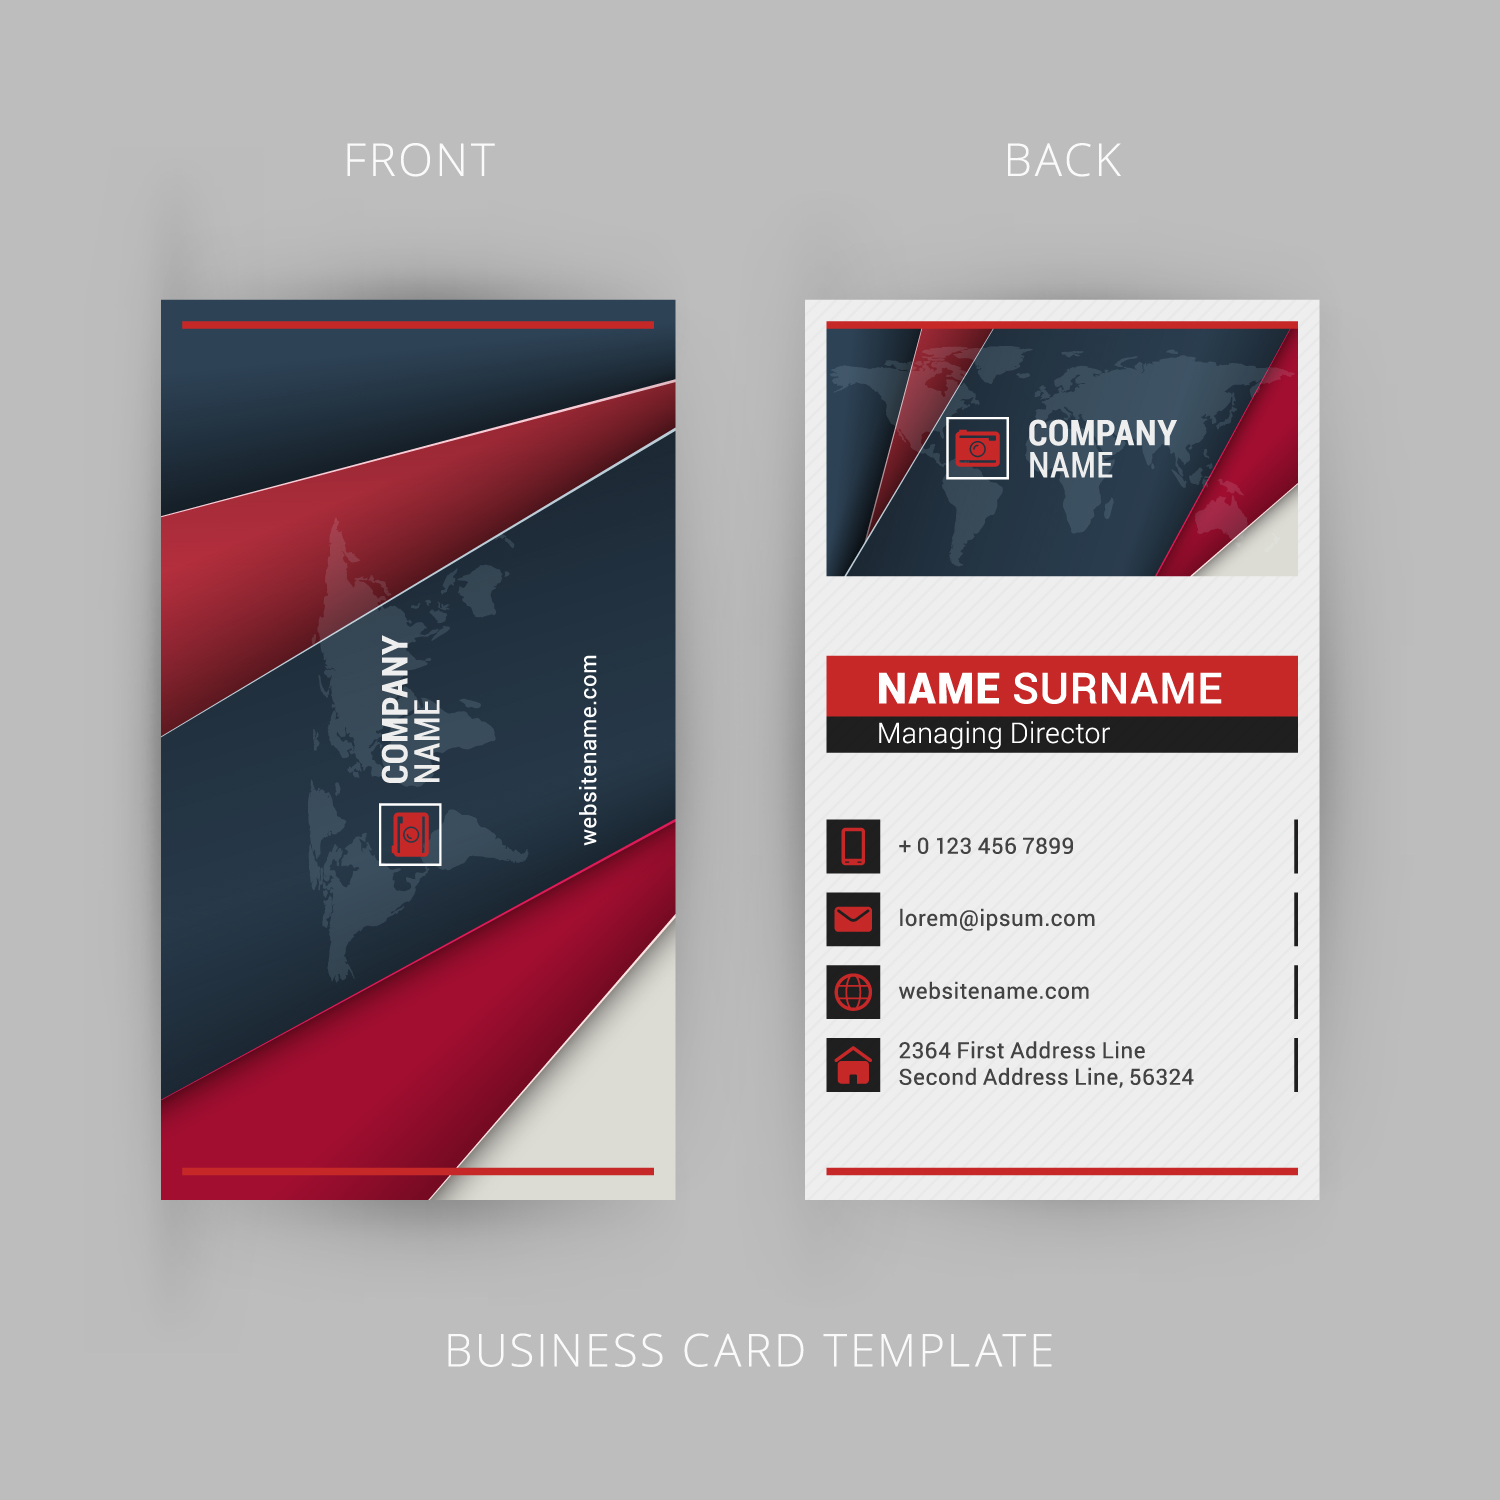 Design Three Different Types Of Business Cards In One Deal